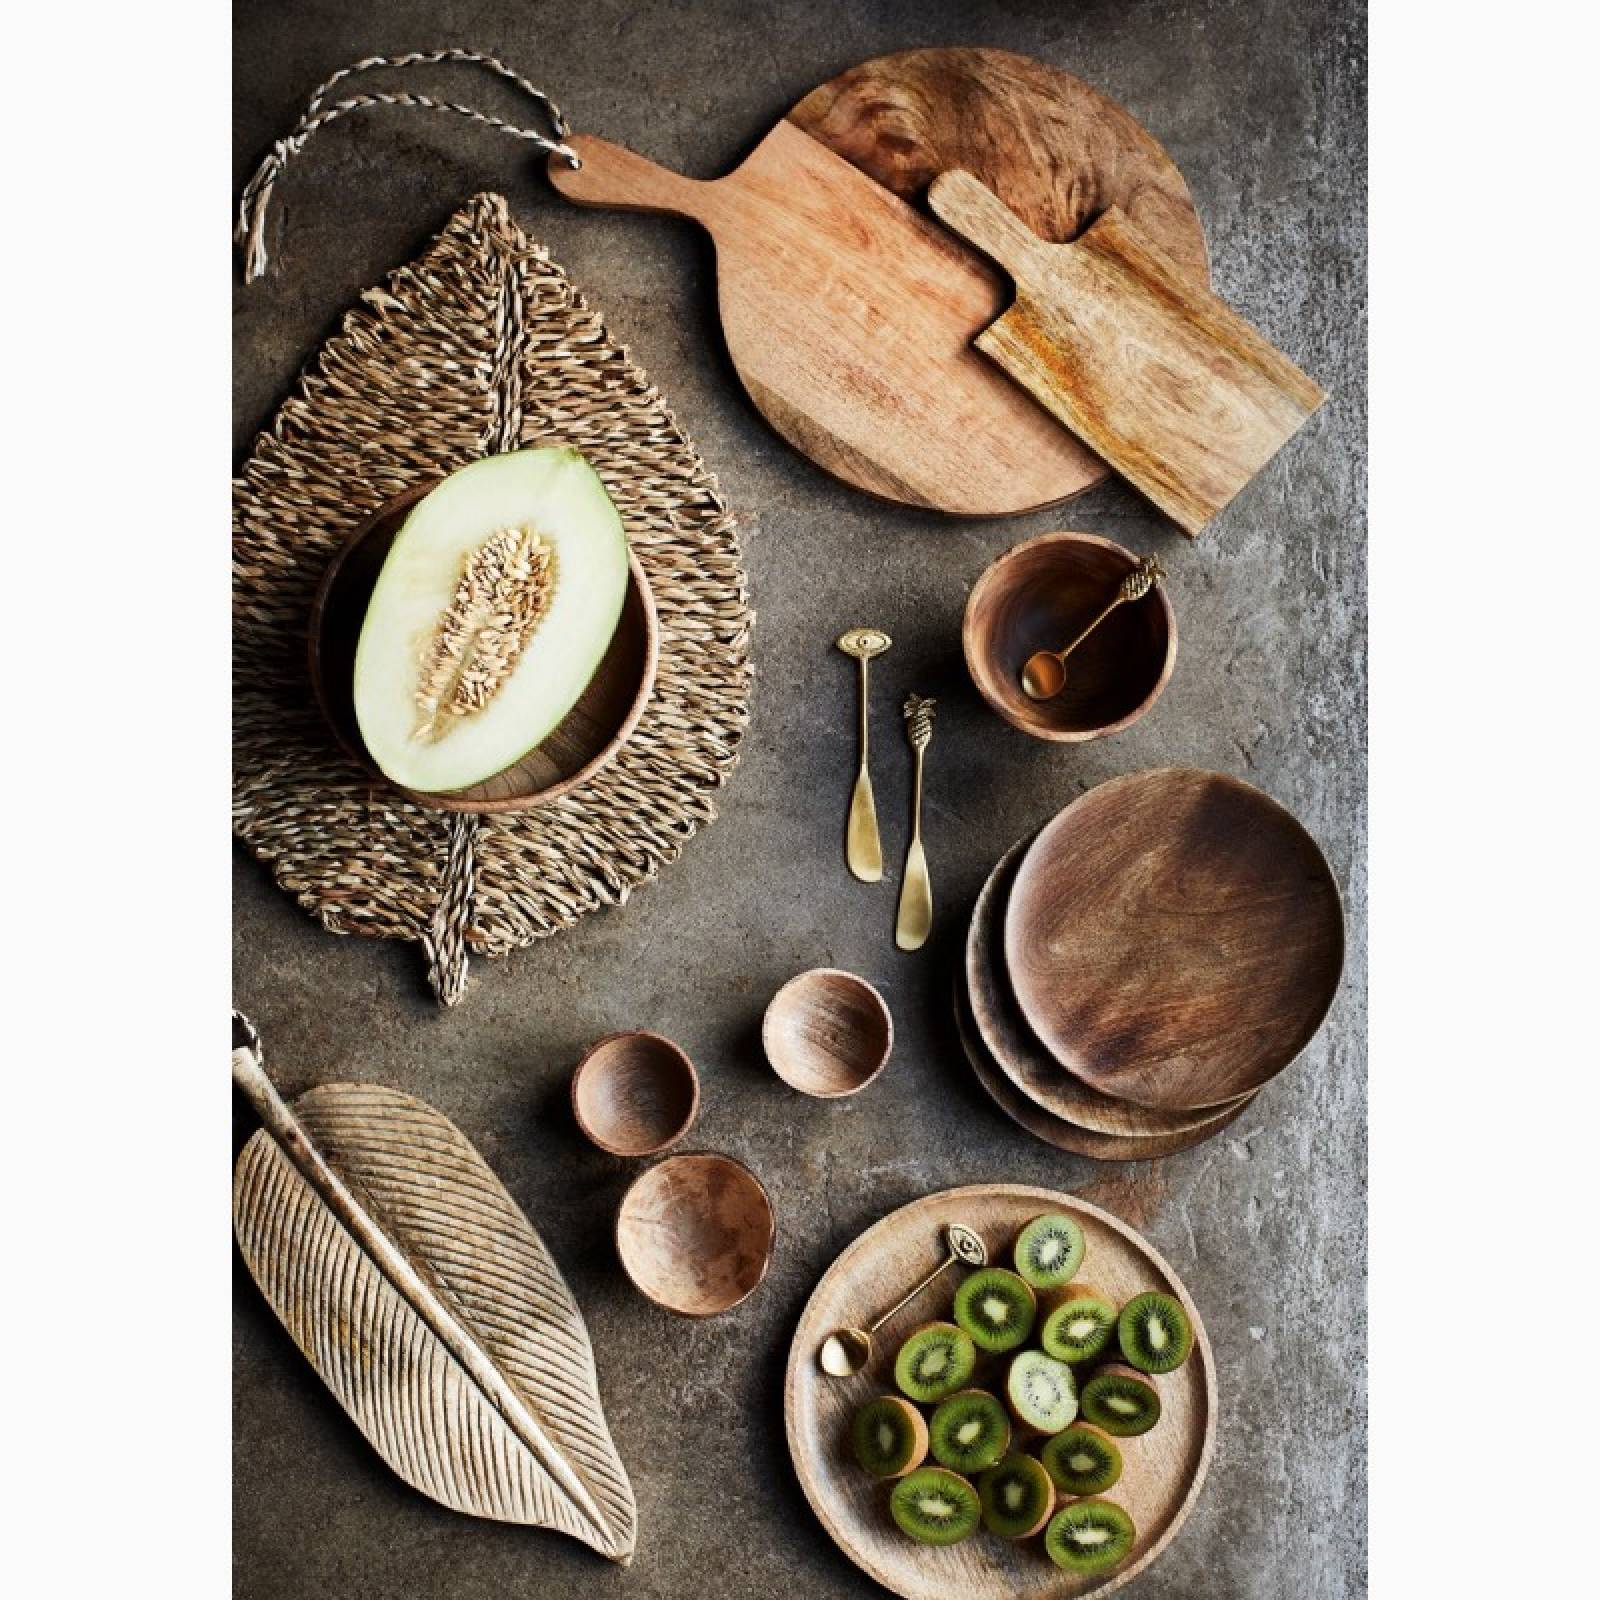 Carved Wooden Leaf Shaped Serving Platter thumbnails